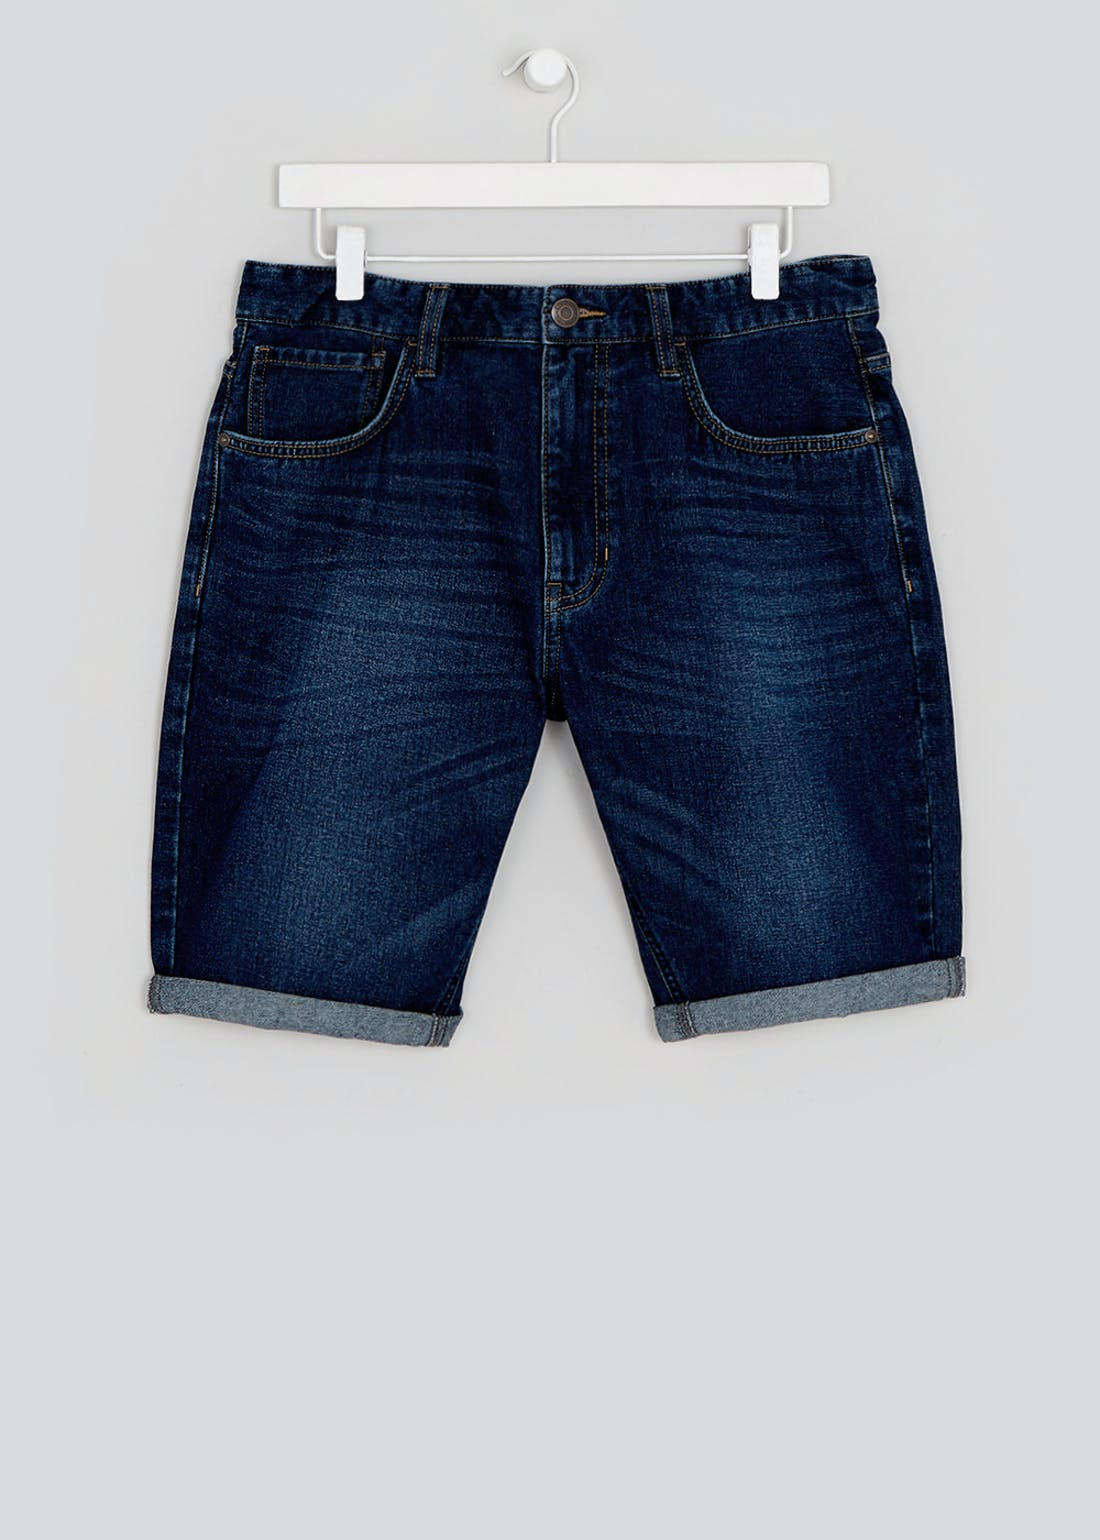 Rigid Denim Shorts